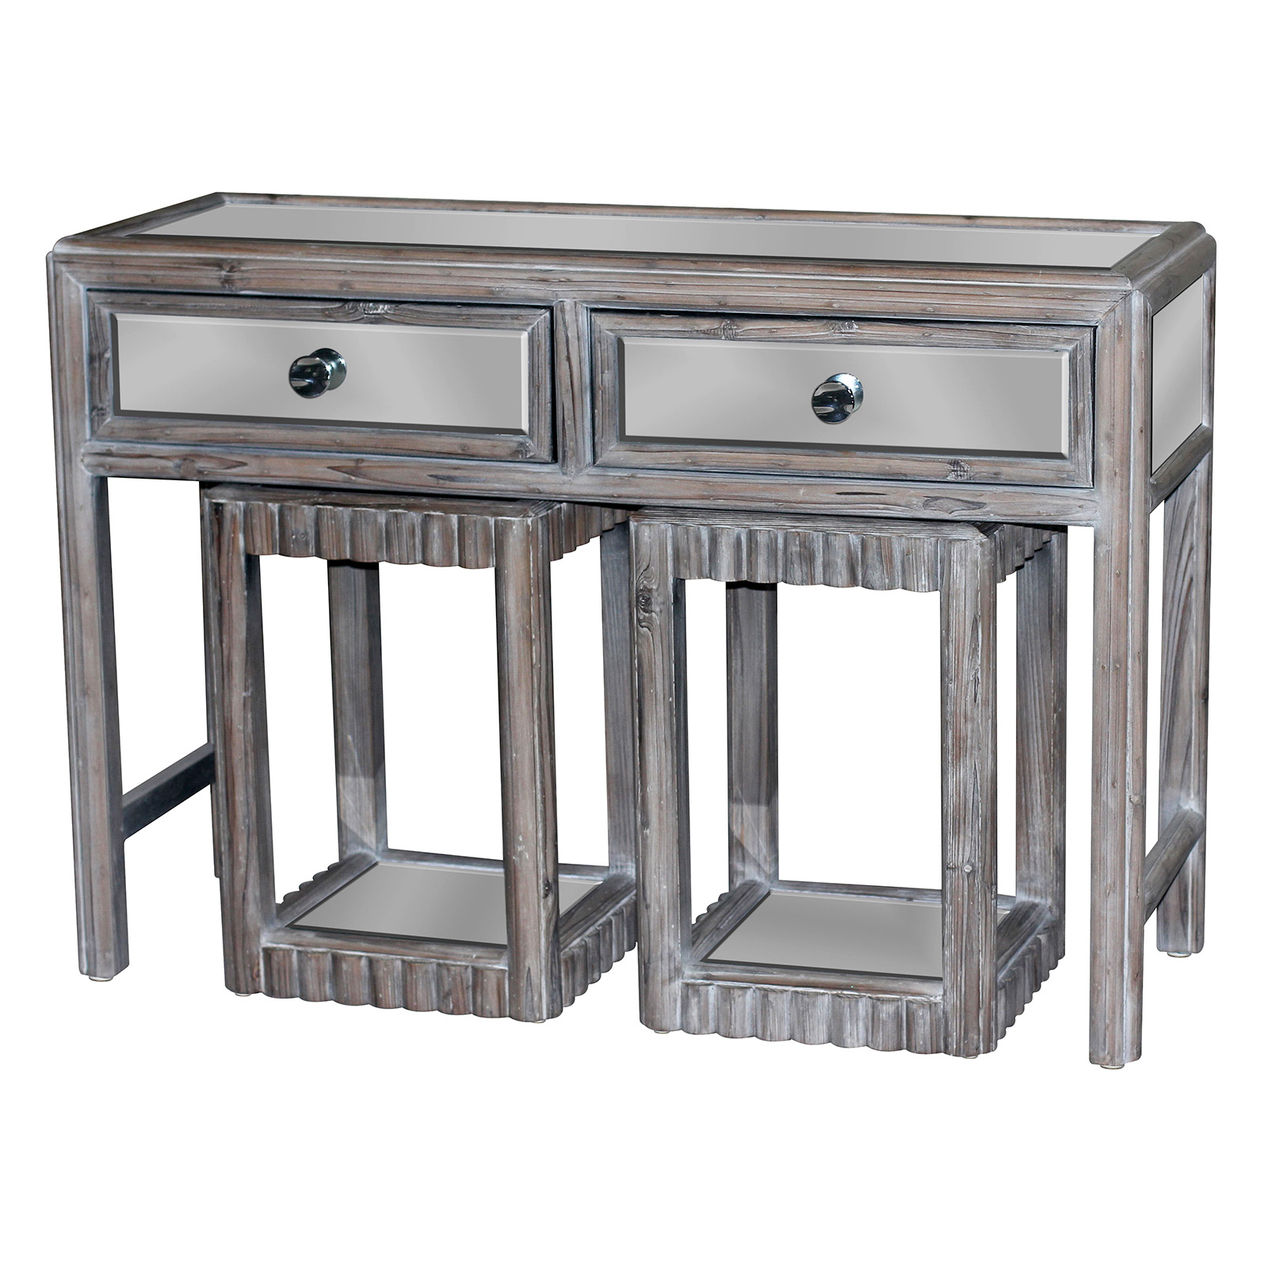 mirrored bamboo accent table each and the desk sold mirror separately pottery barn toscana small garden storage chest round outdoor cocktail kmart dining target chalk paint hobby